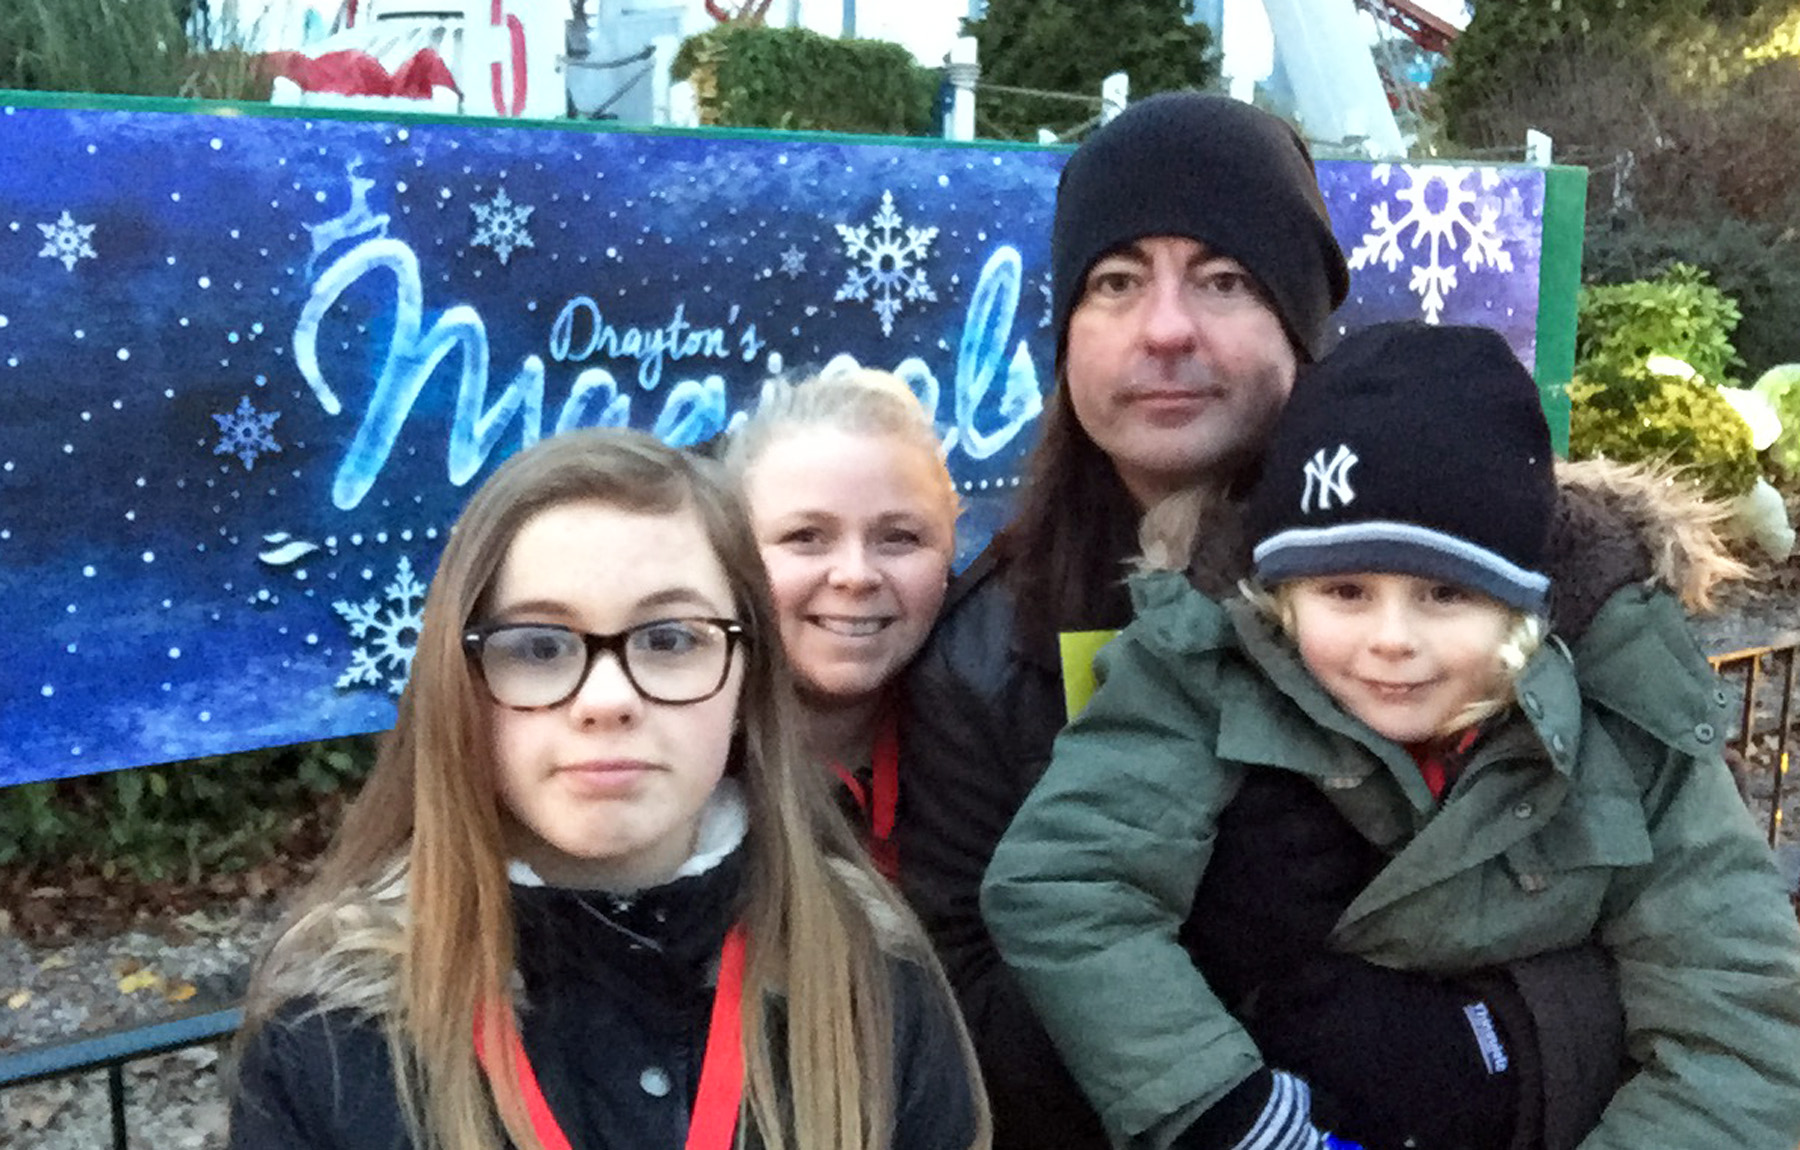 The Jennings family at Drayton Manor